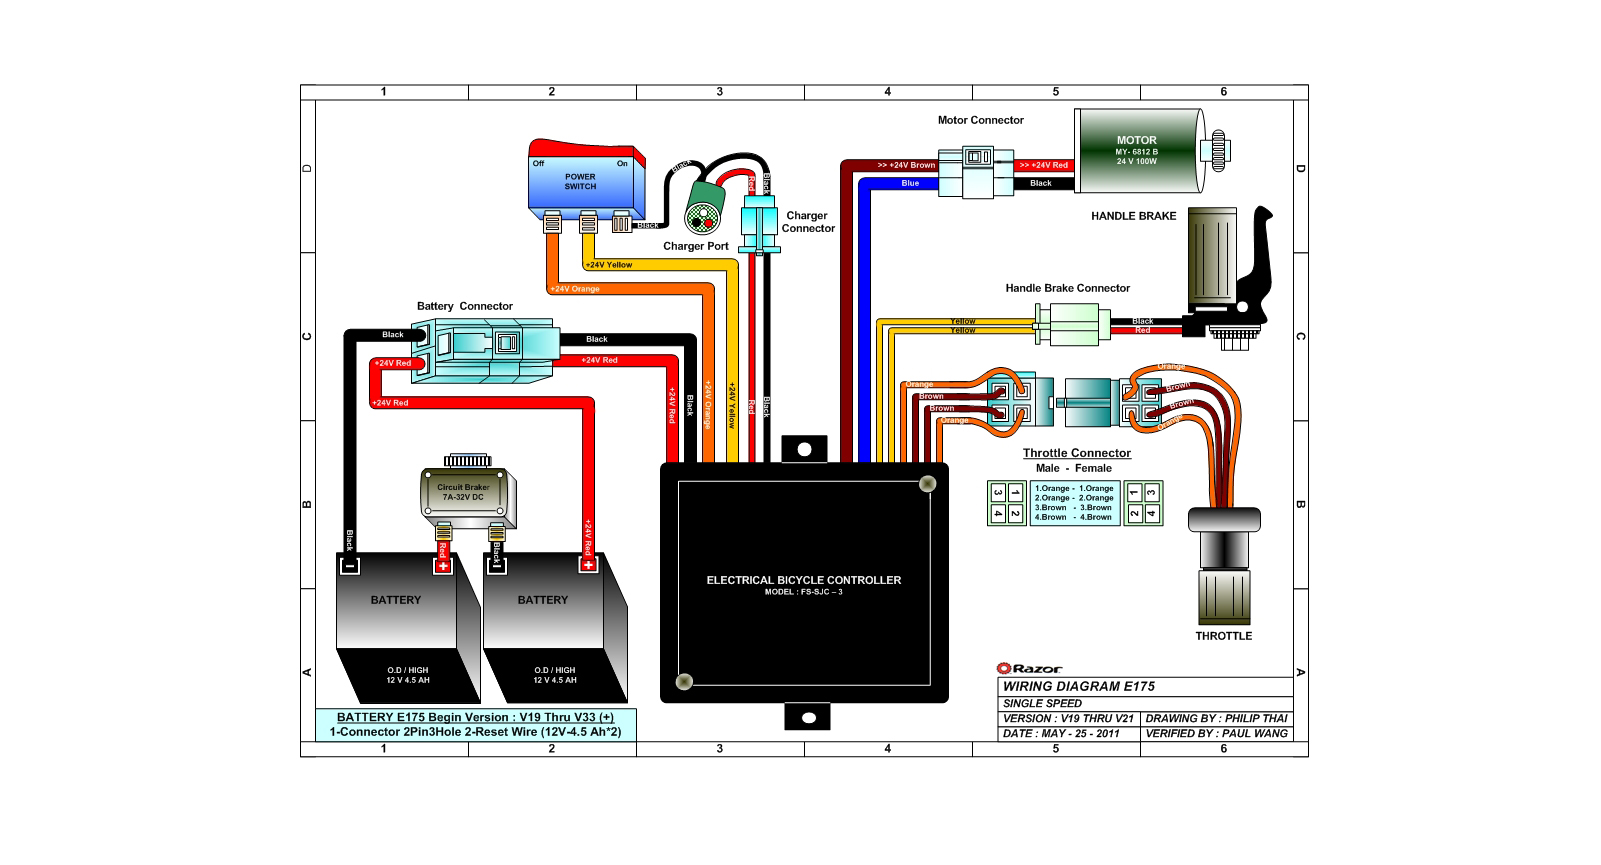 hight resolution of  e175 versions 19 21 wiring diagram